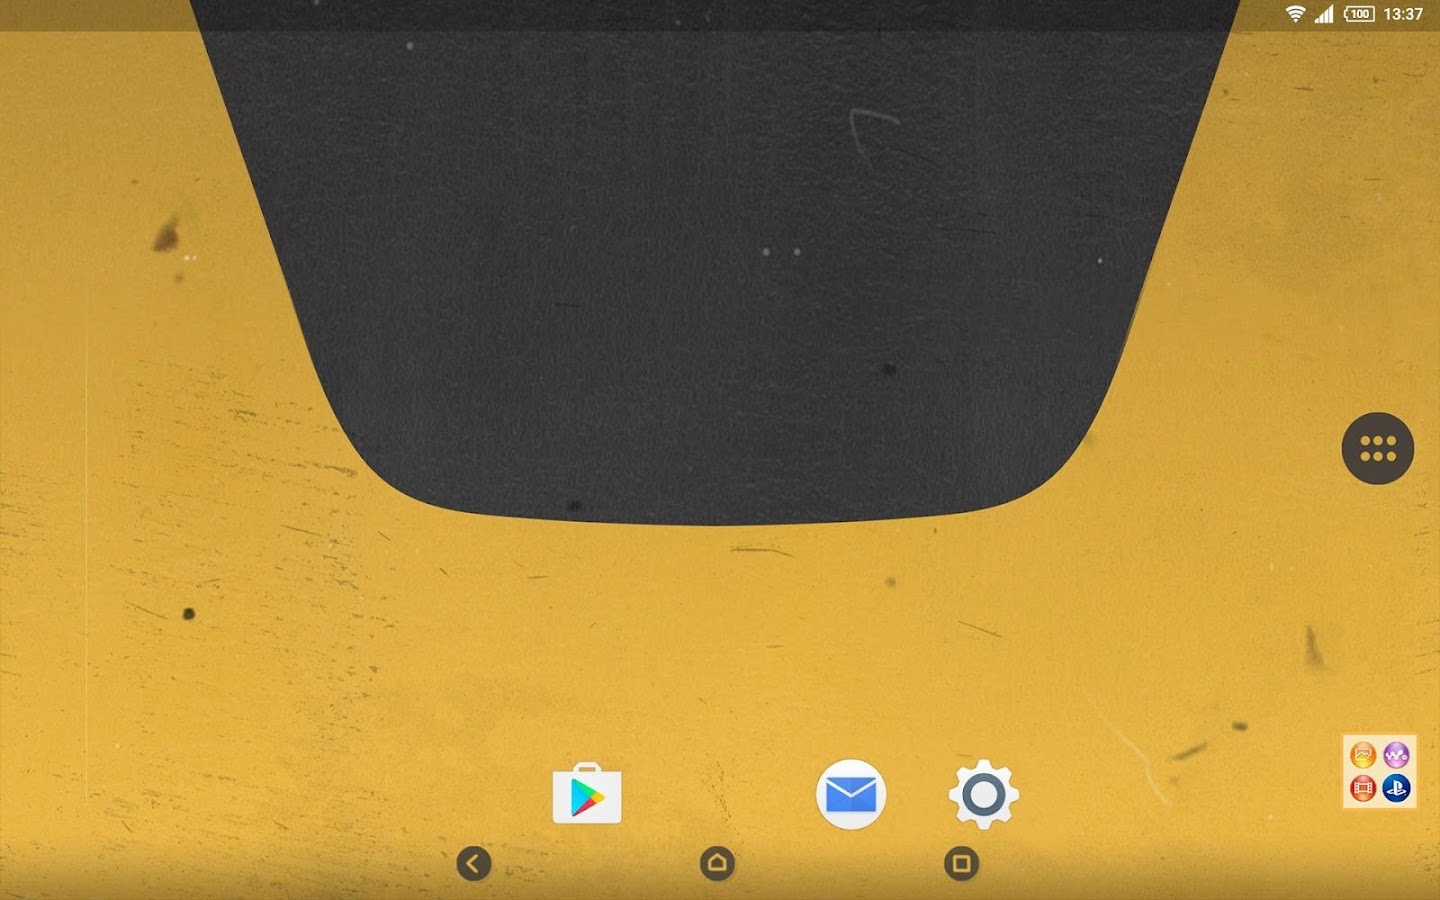 XPERIA  Yellow Retro Theme  screenshot. XPERIA  Yellow Retro Theme   Android Apps on Google Play